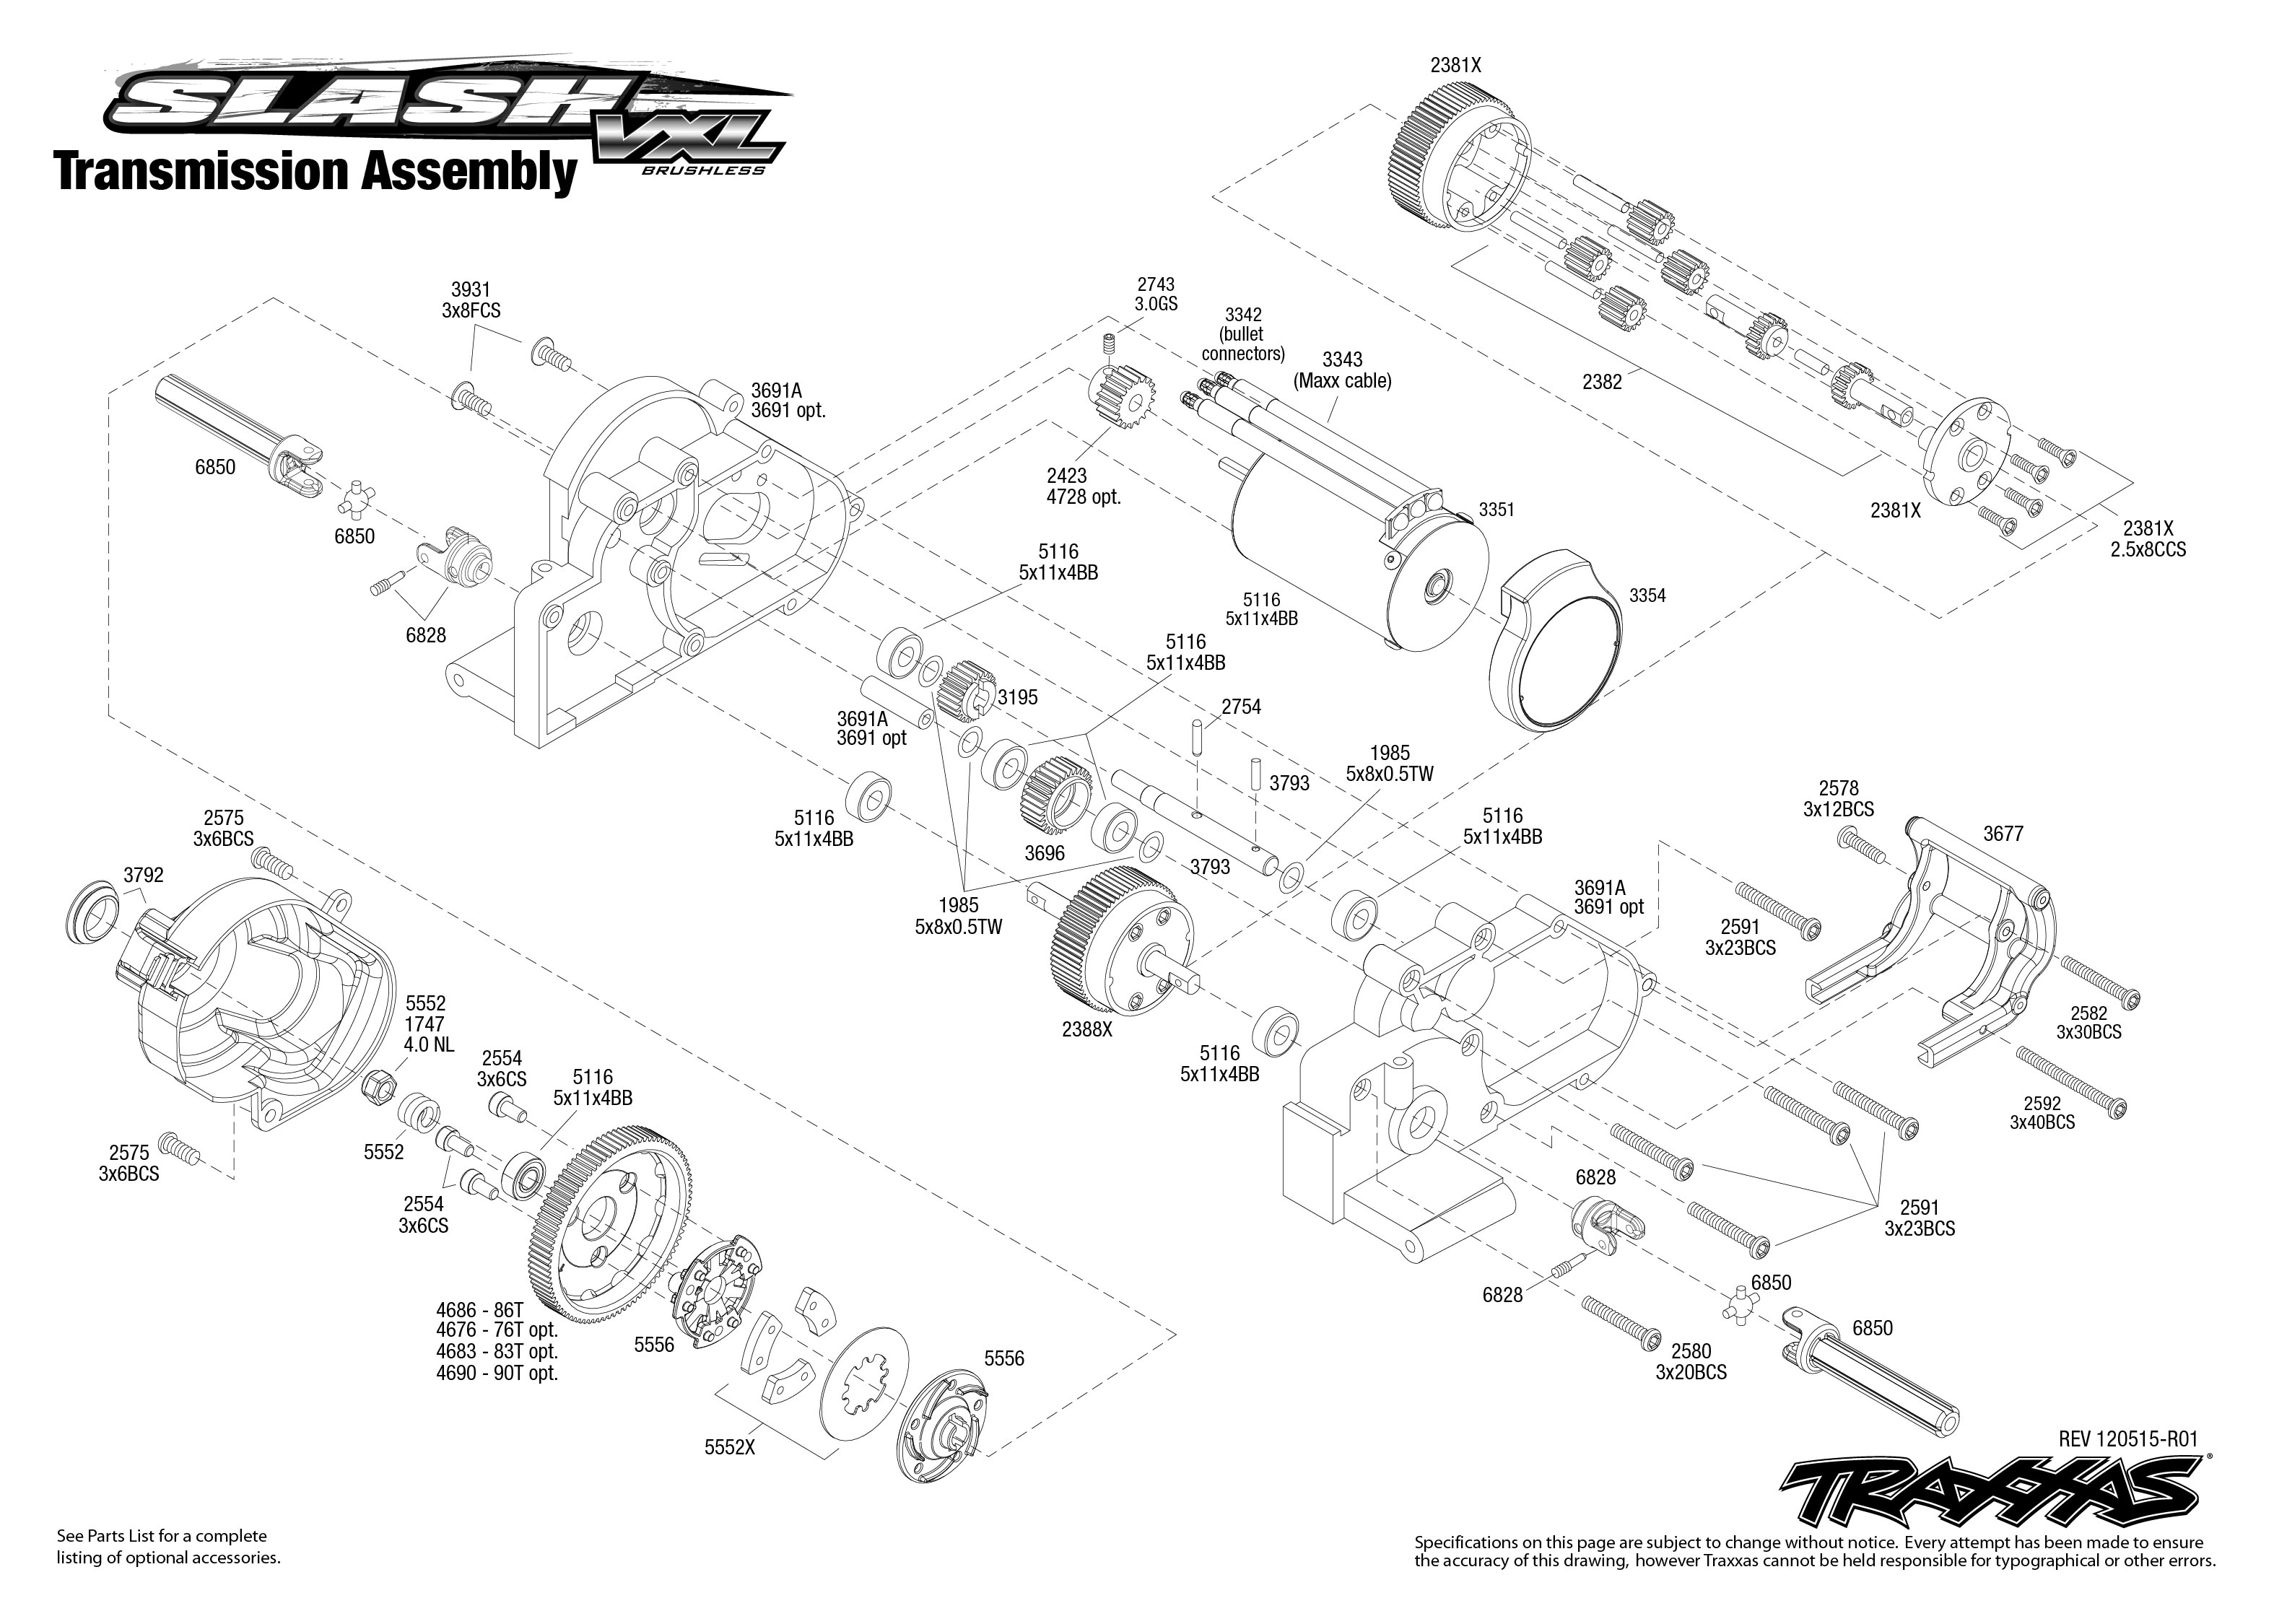 traxxas slash 2wd parts diagram pdf phillyfilecloud traxxas slash 2wd owners manual traxxas slash 2wd parts list pdf